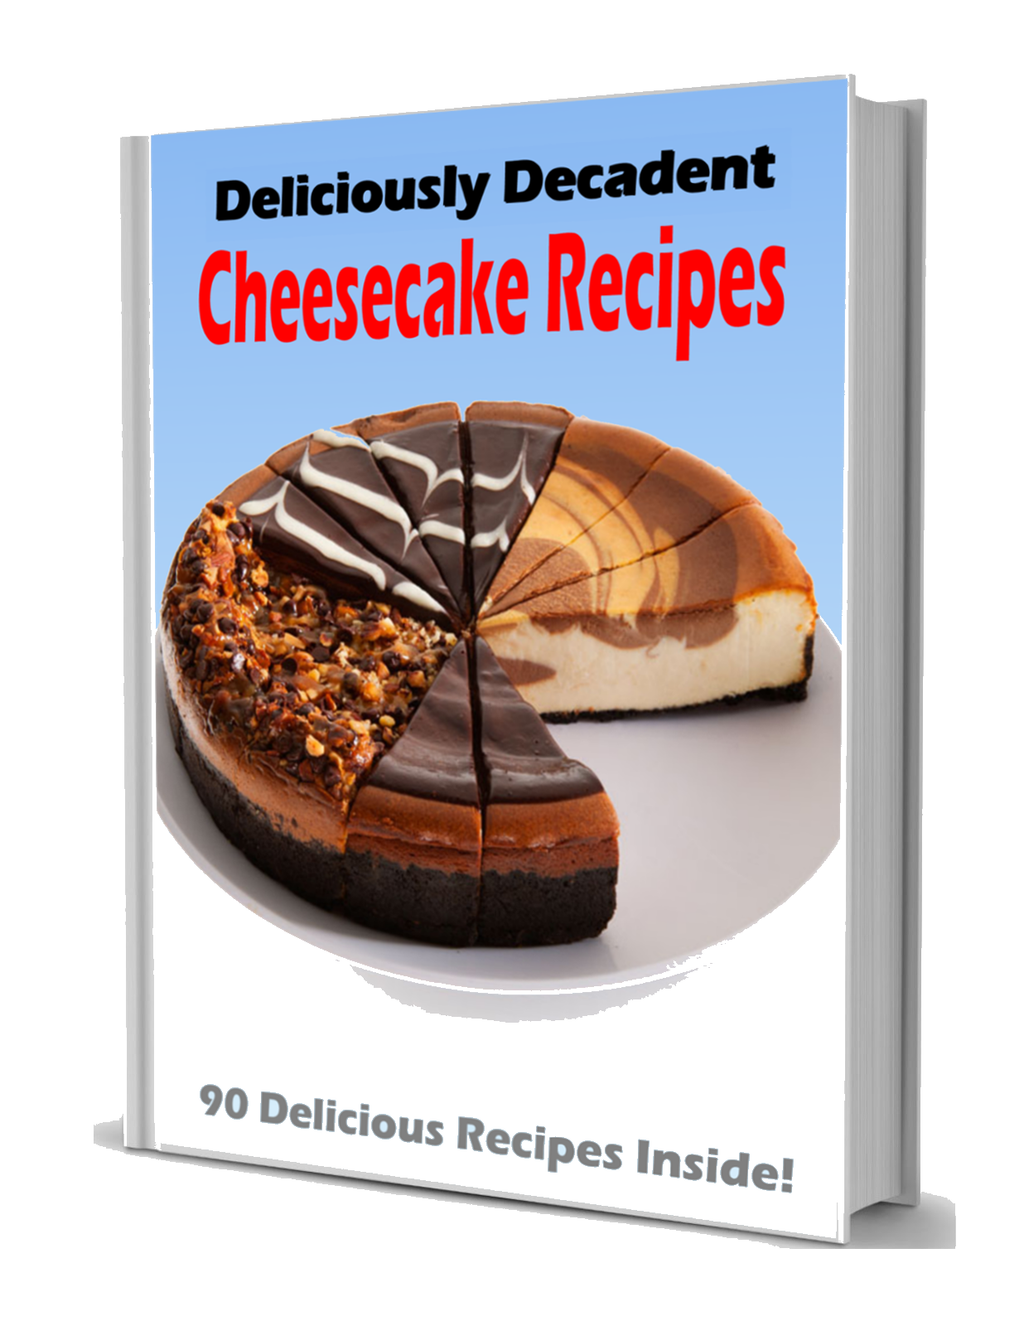 Deliciously Decadent Cheesecake Recipes